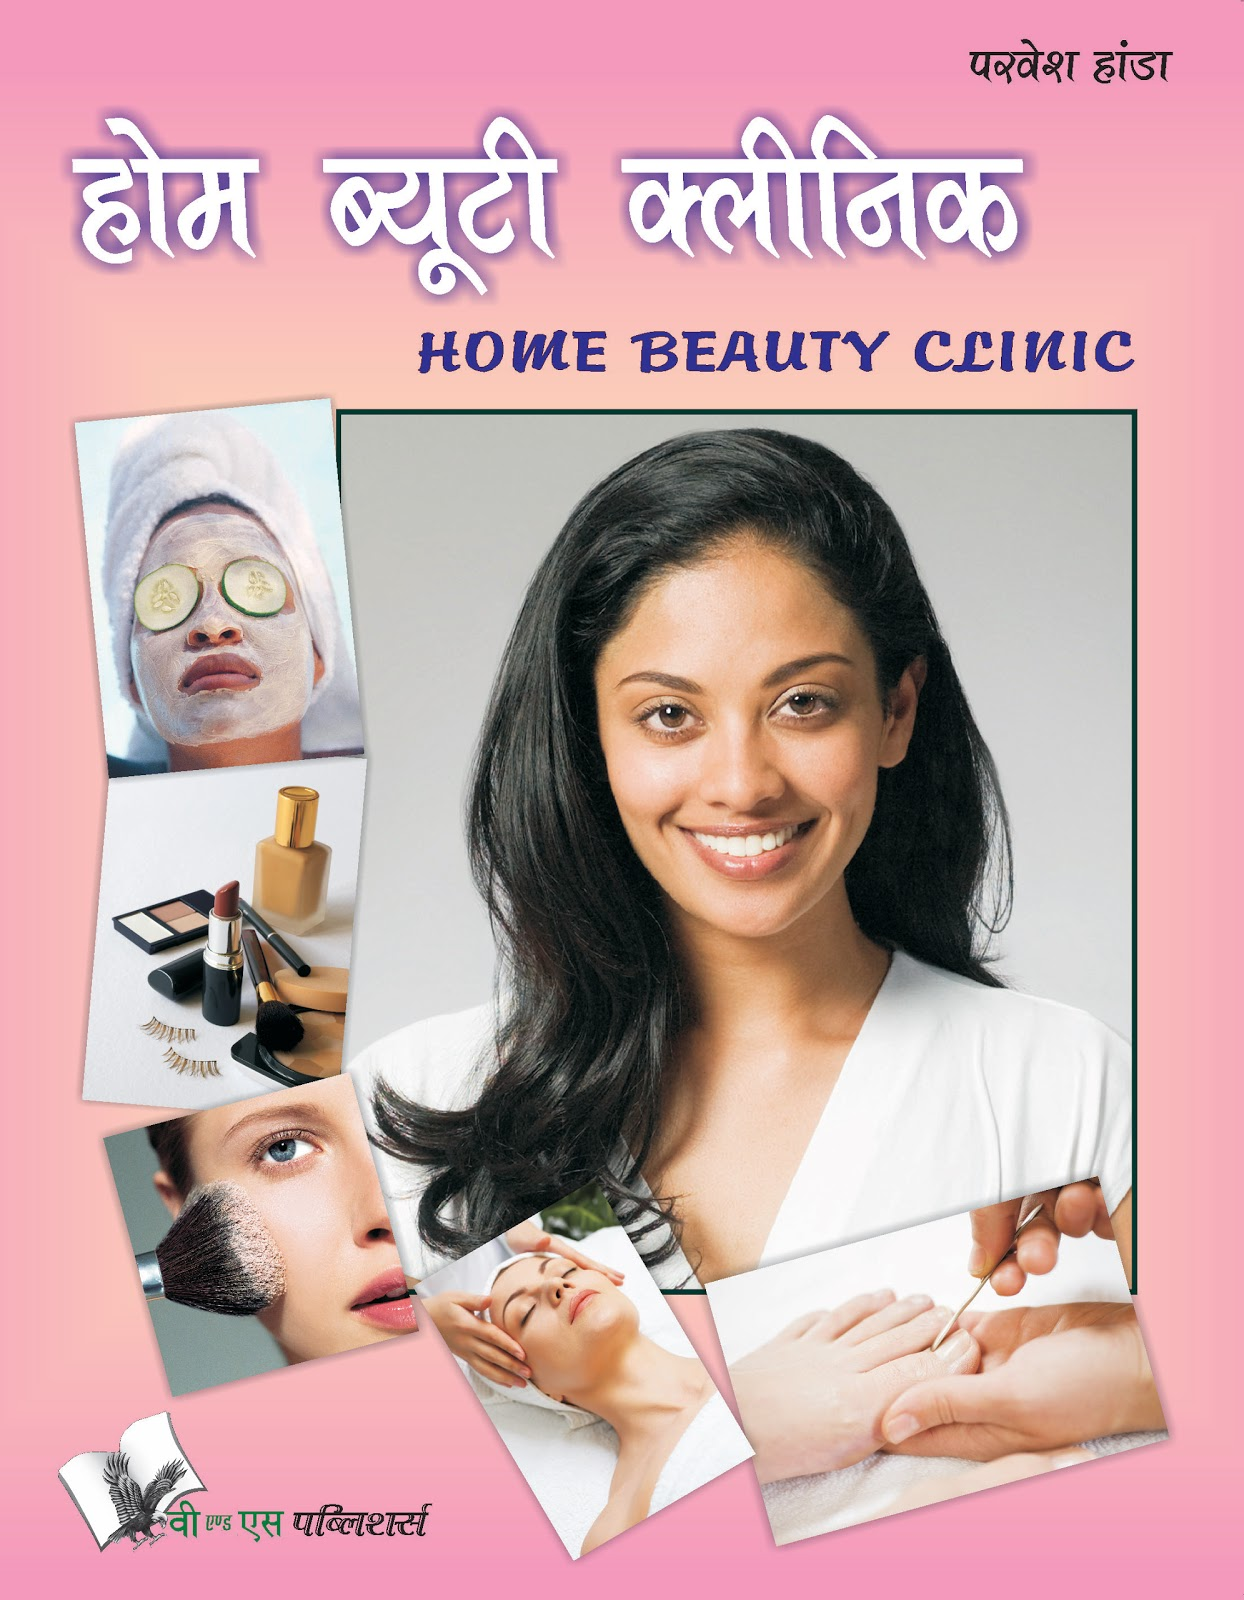 Simple makeup tips at home in hindi. Simple makeup tips at home in hindi   Your secrets to successful